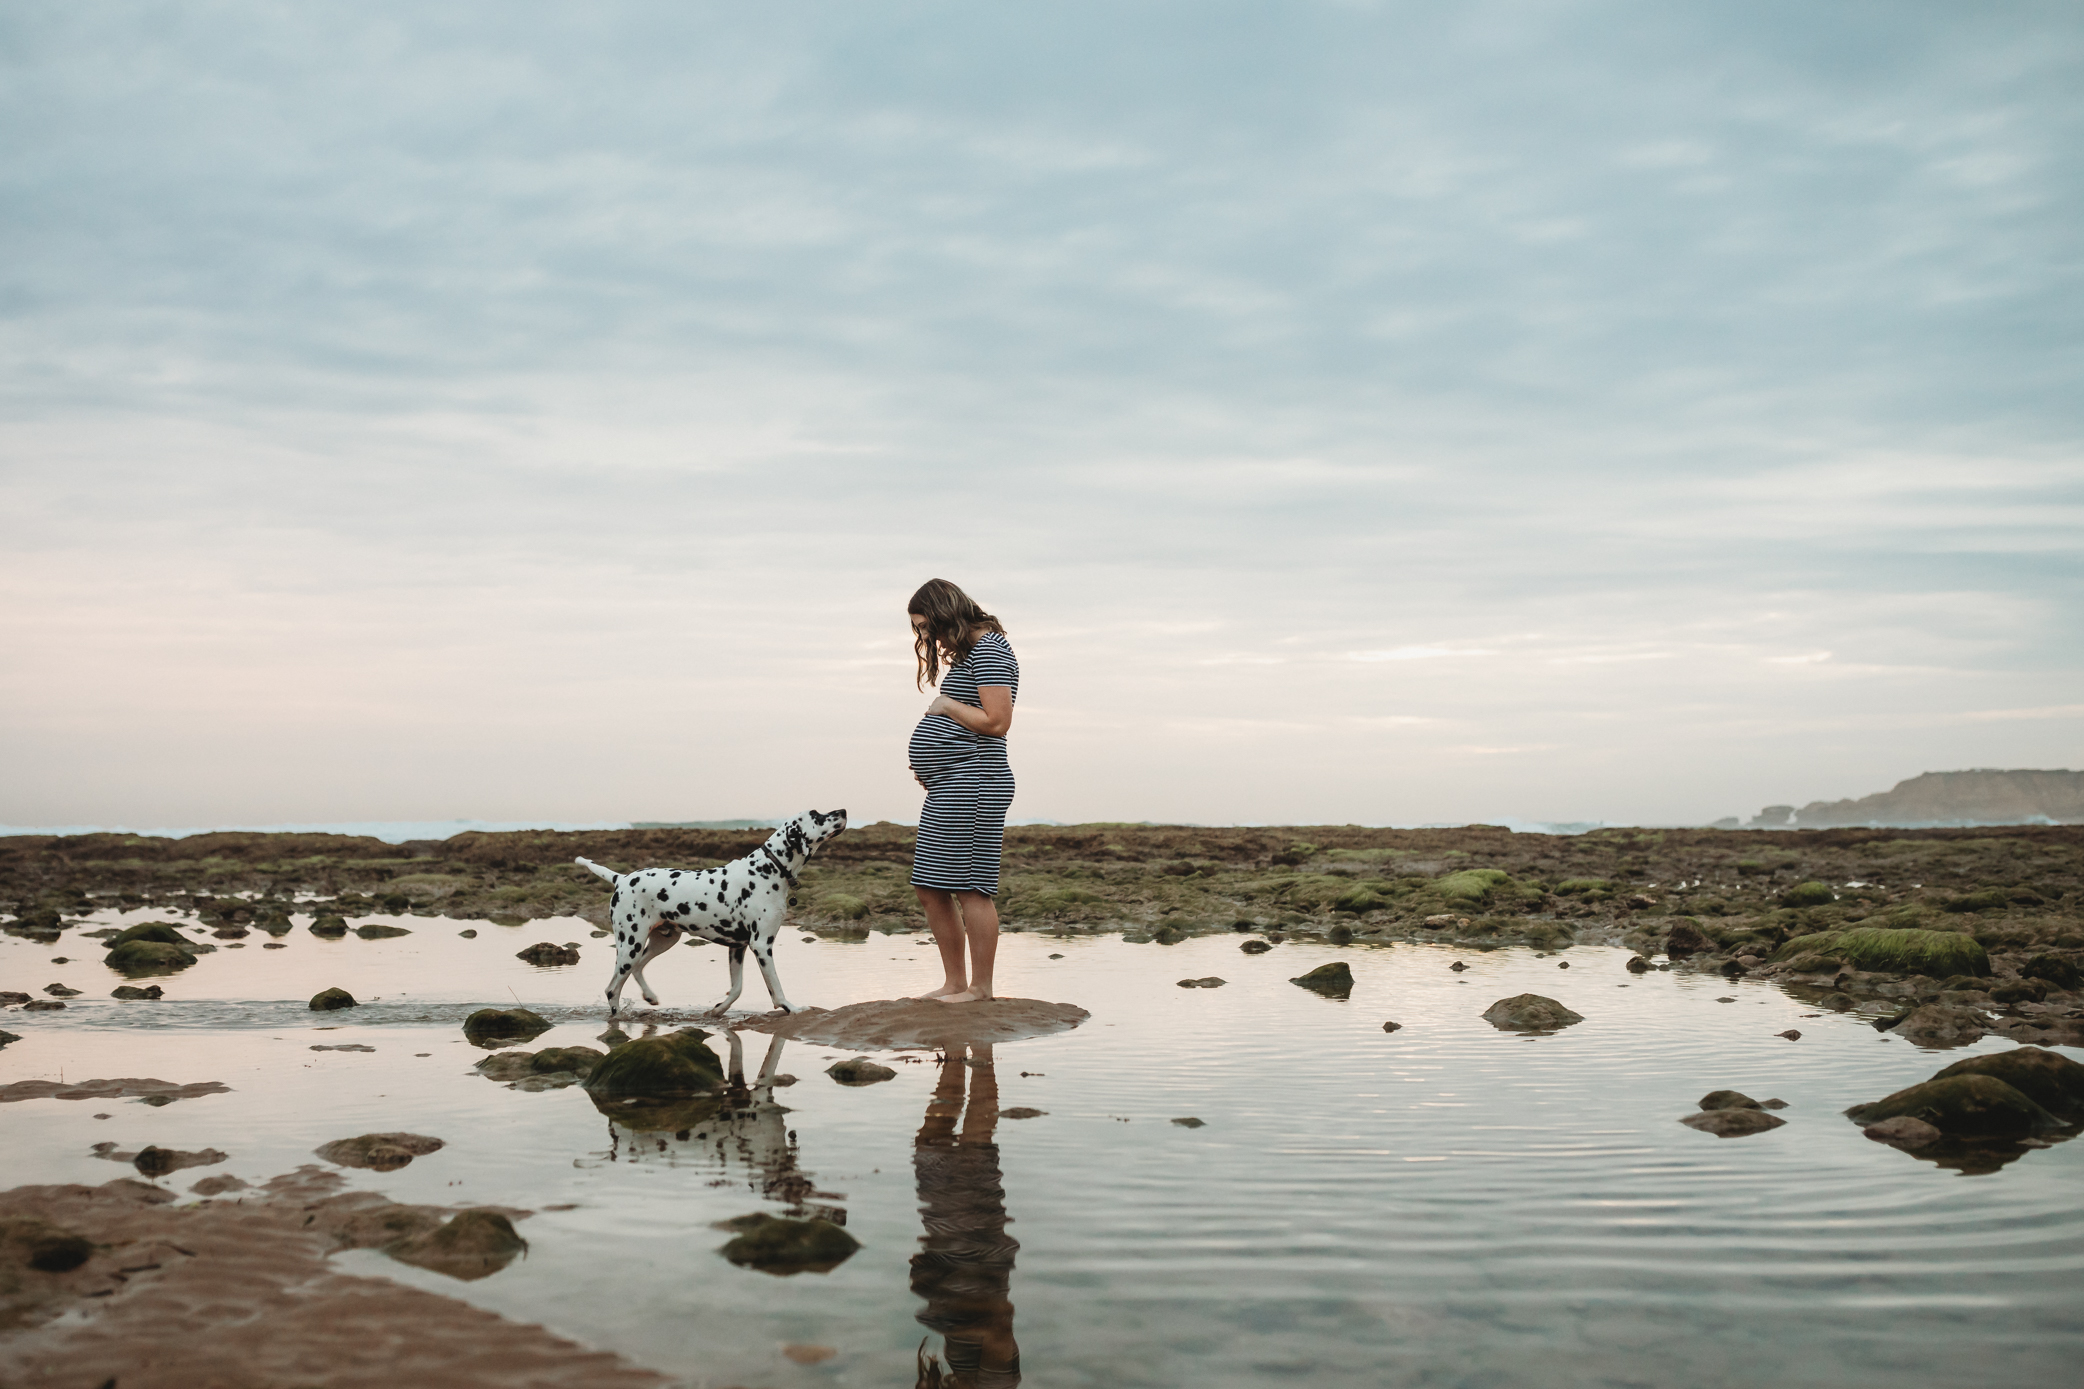 Lifestyle photography in Geelong on the beach